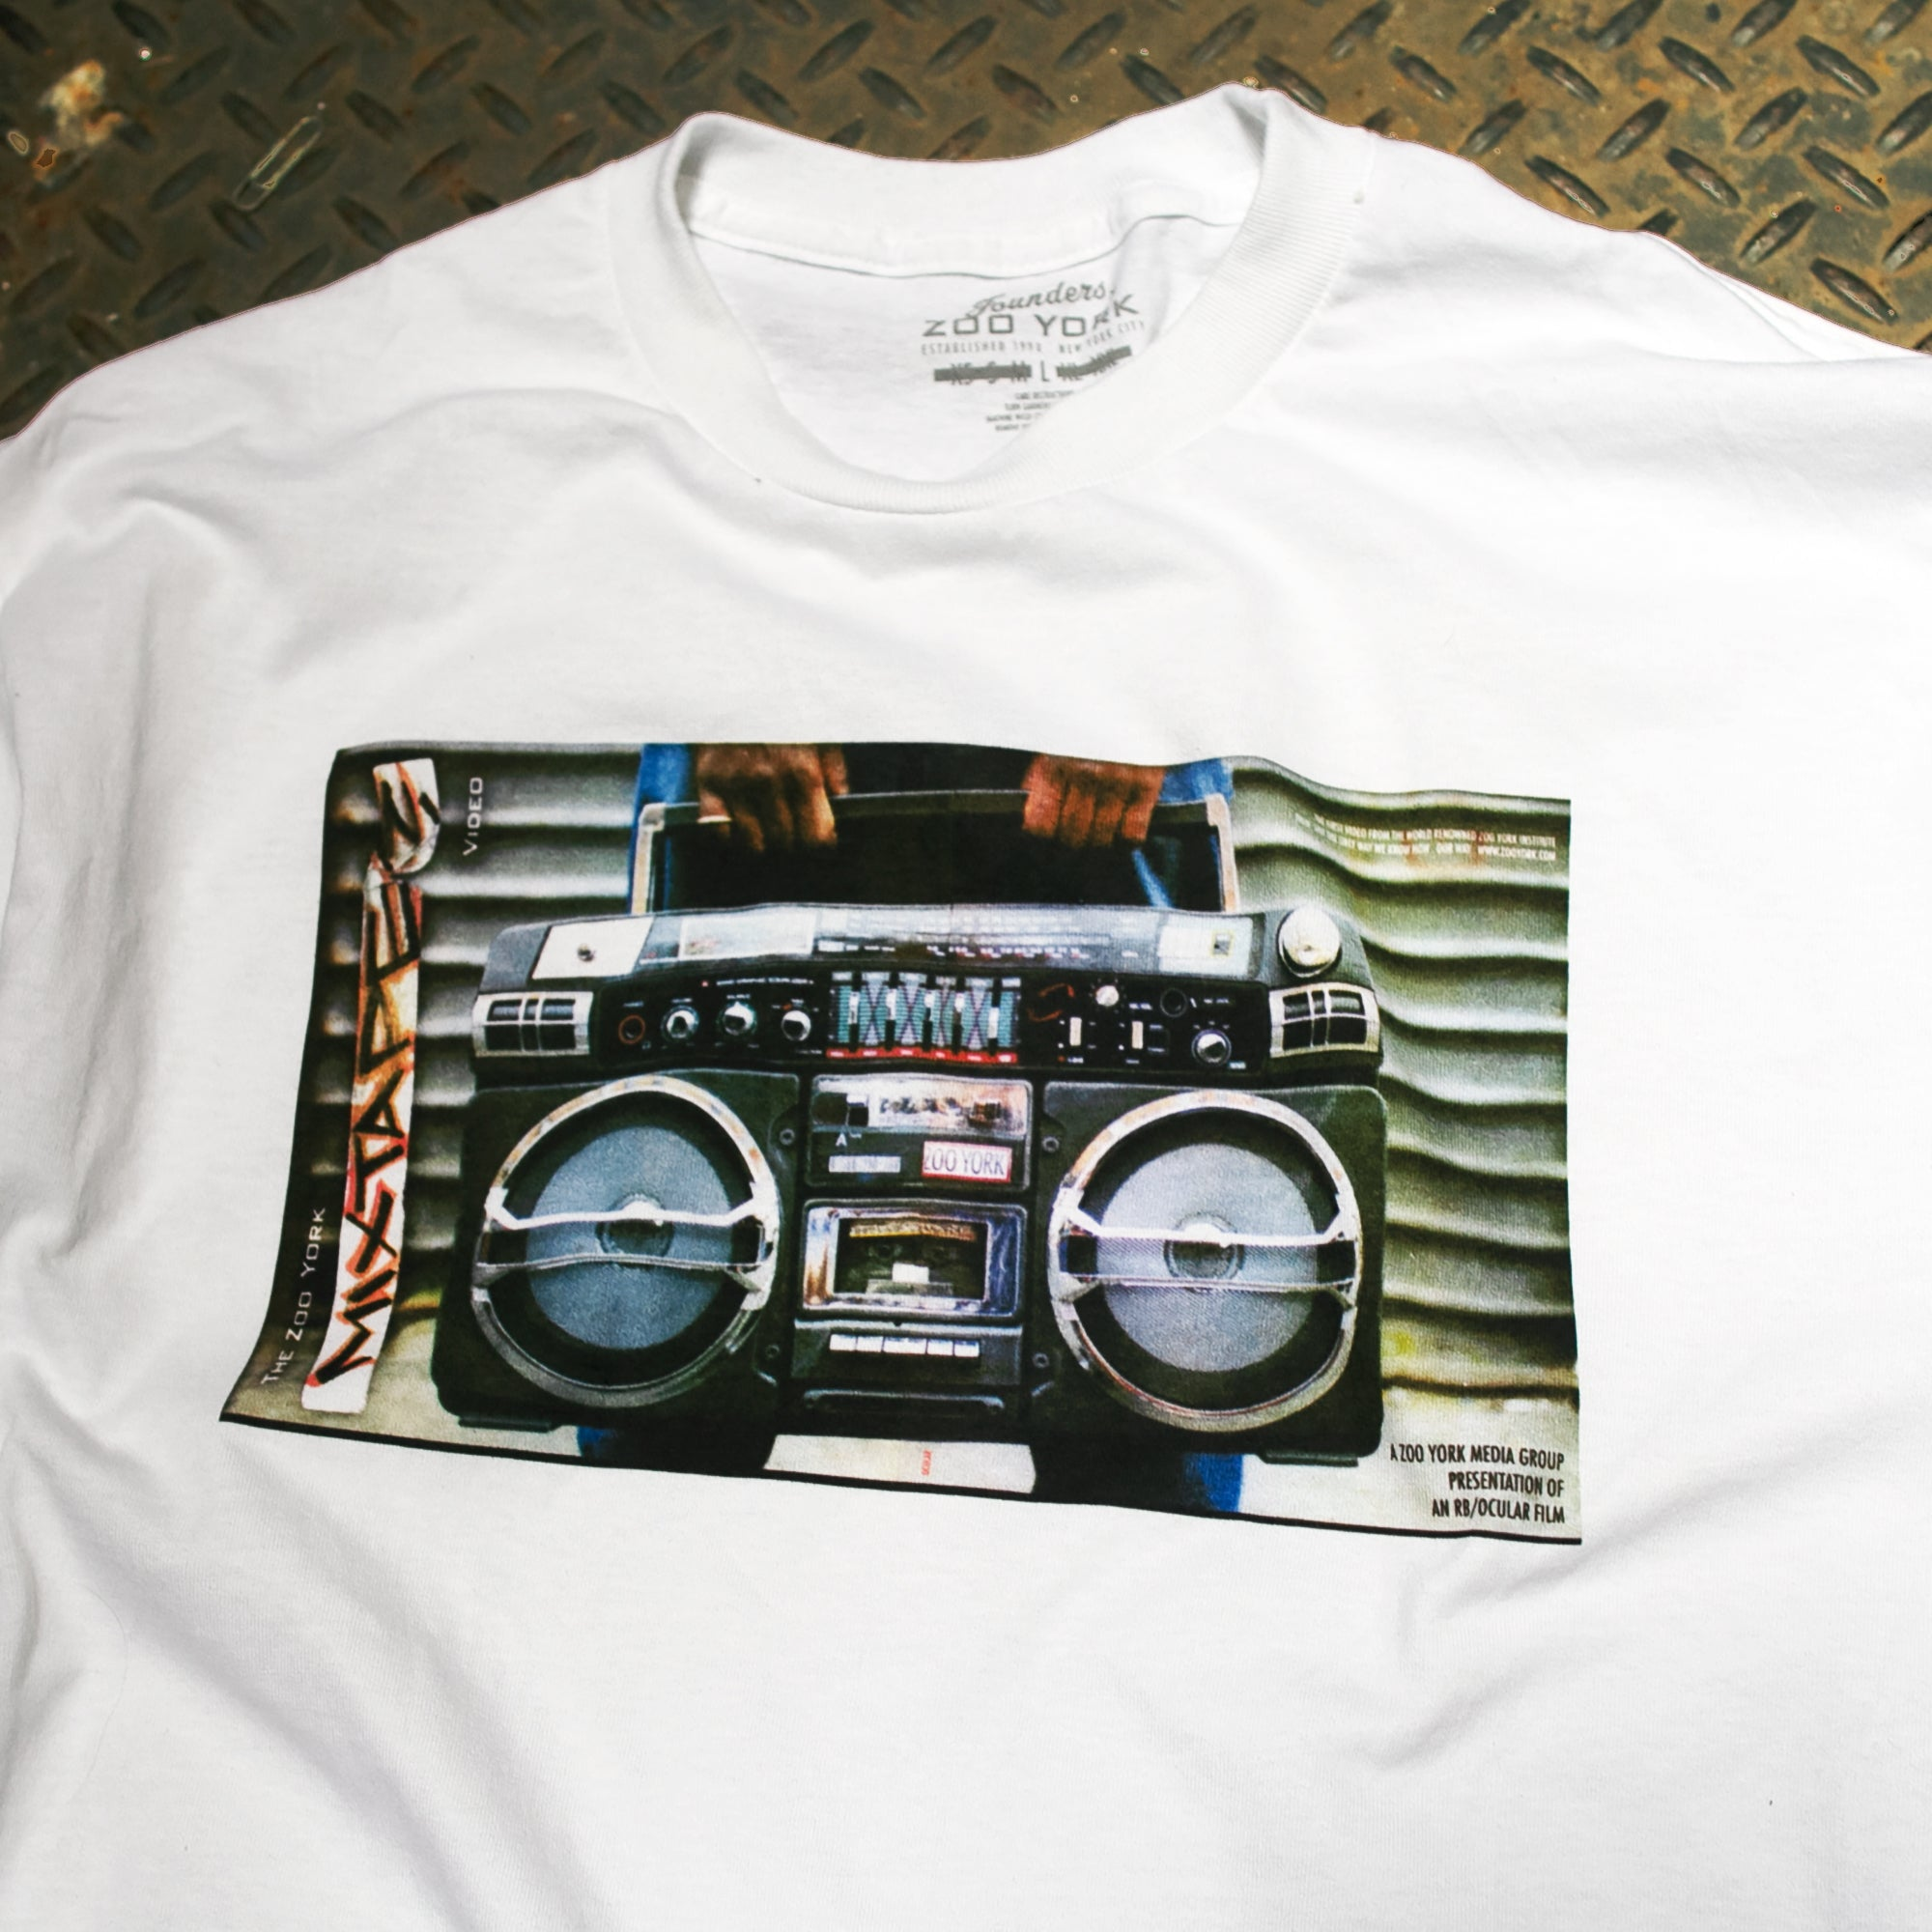 MIX TAPE GRAPHIC T-SHIRT